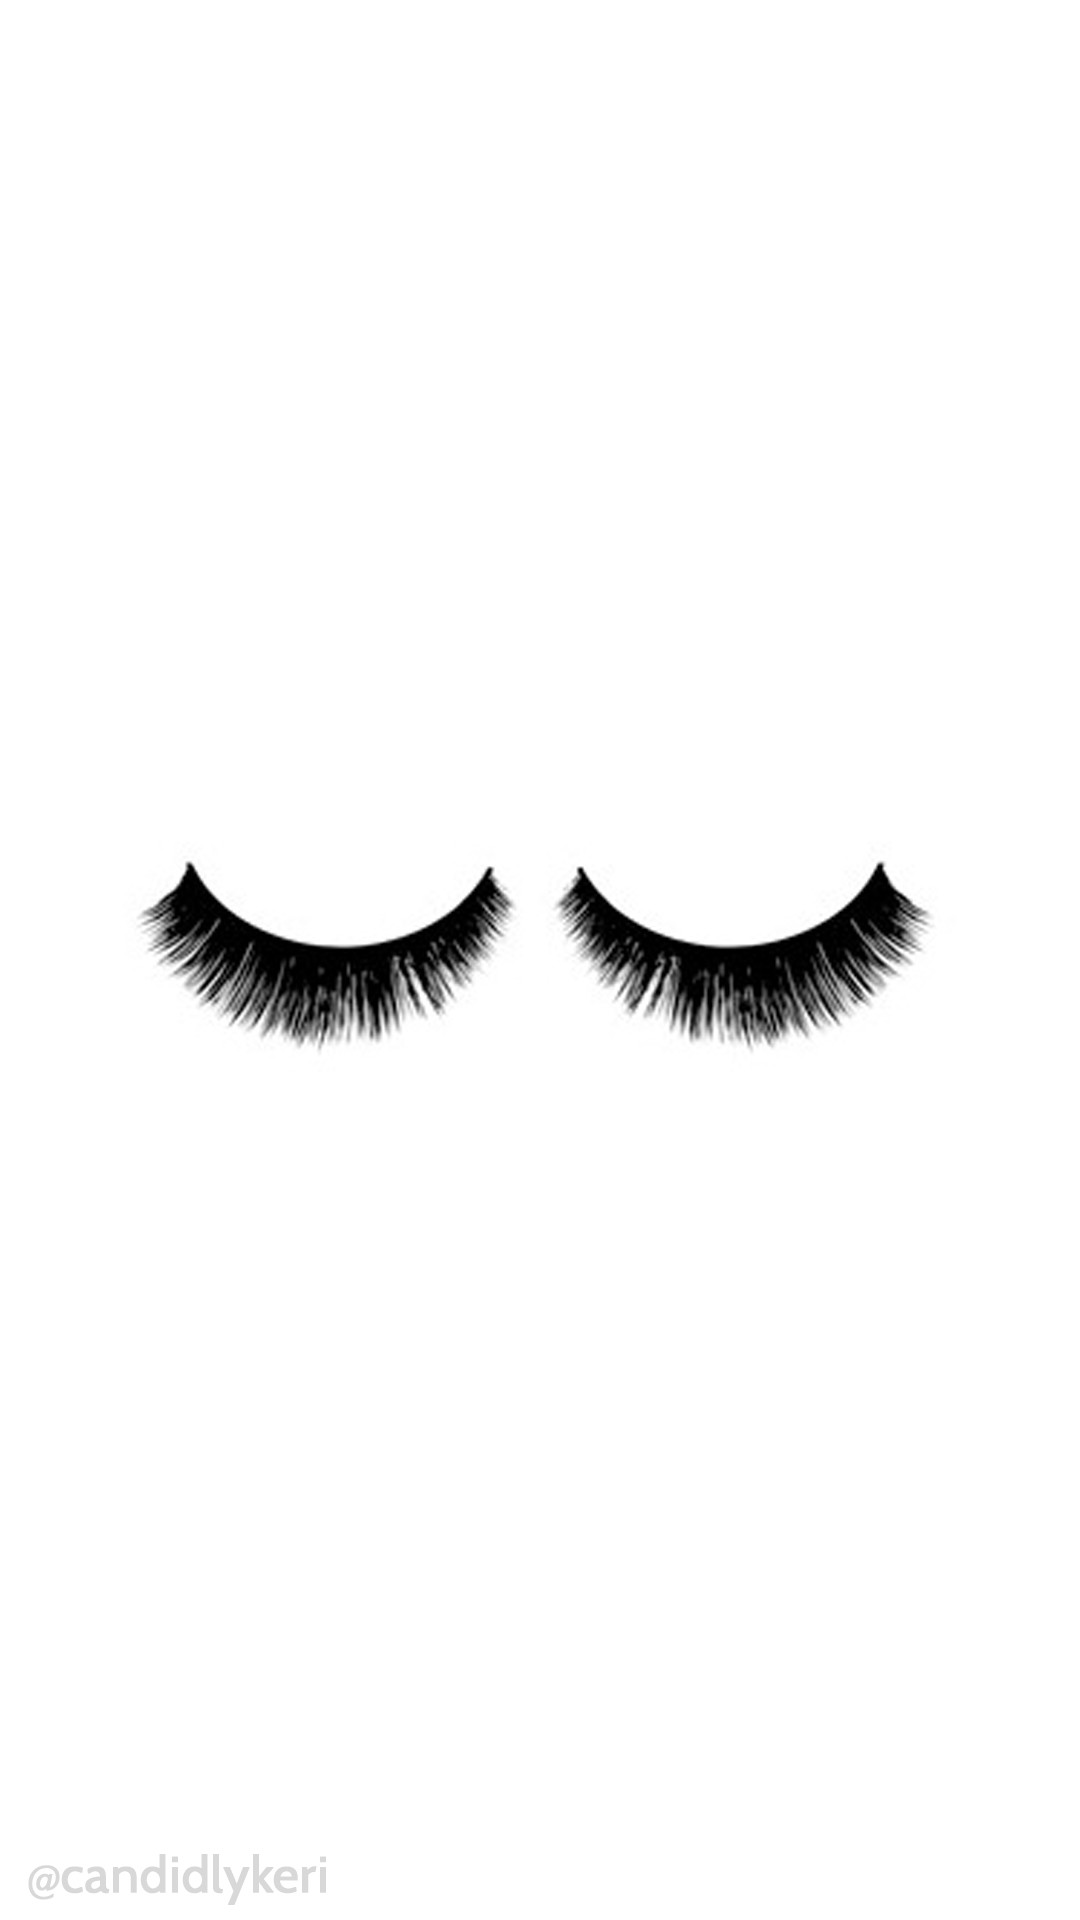 1080x1920 Eyelashes Fake lashes sleepy background wallpaper you can download for free  on the blog! For